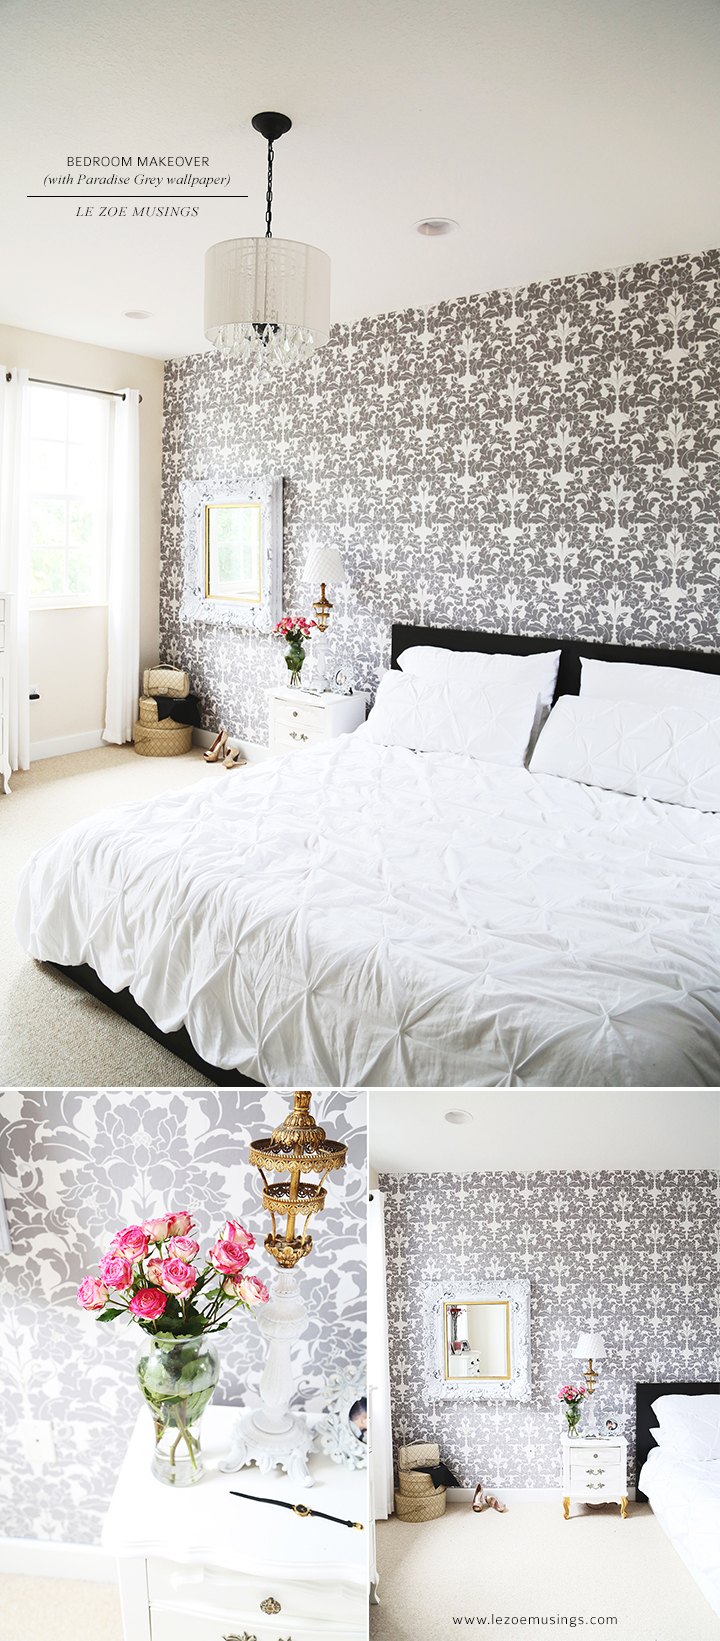 Bedroom Makeover with Wallpaper by Le Zoe Musings5